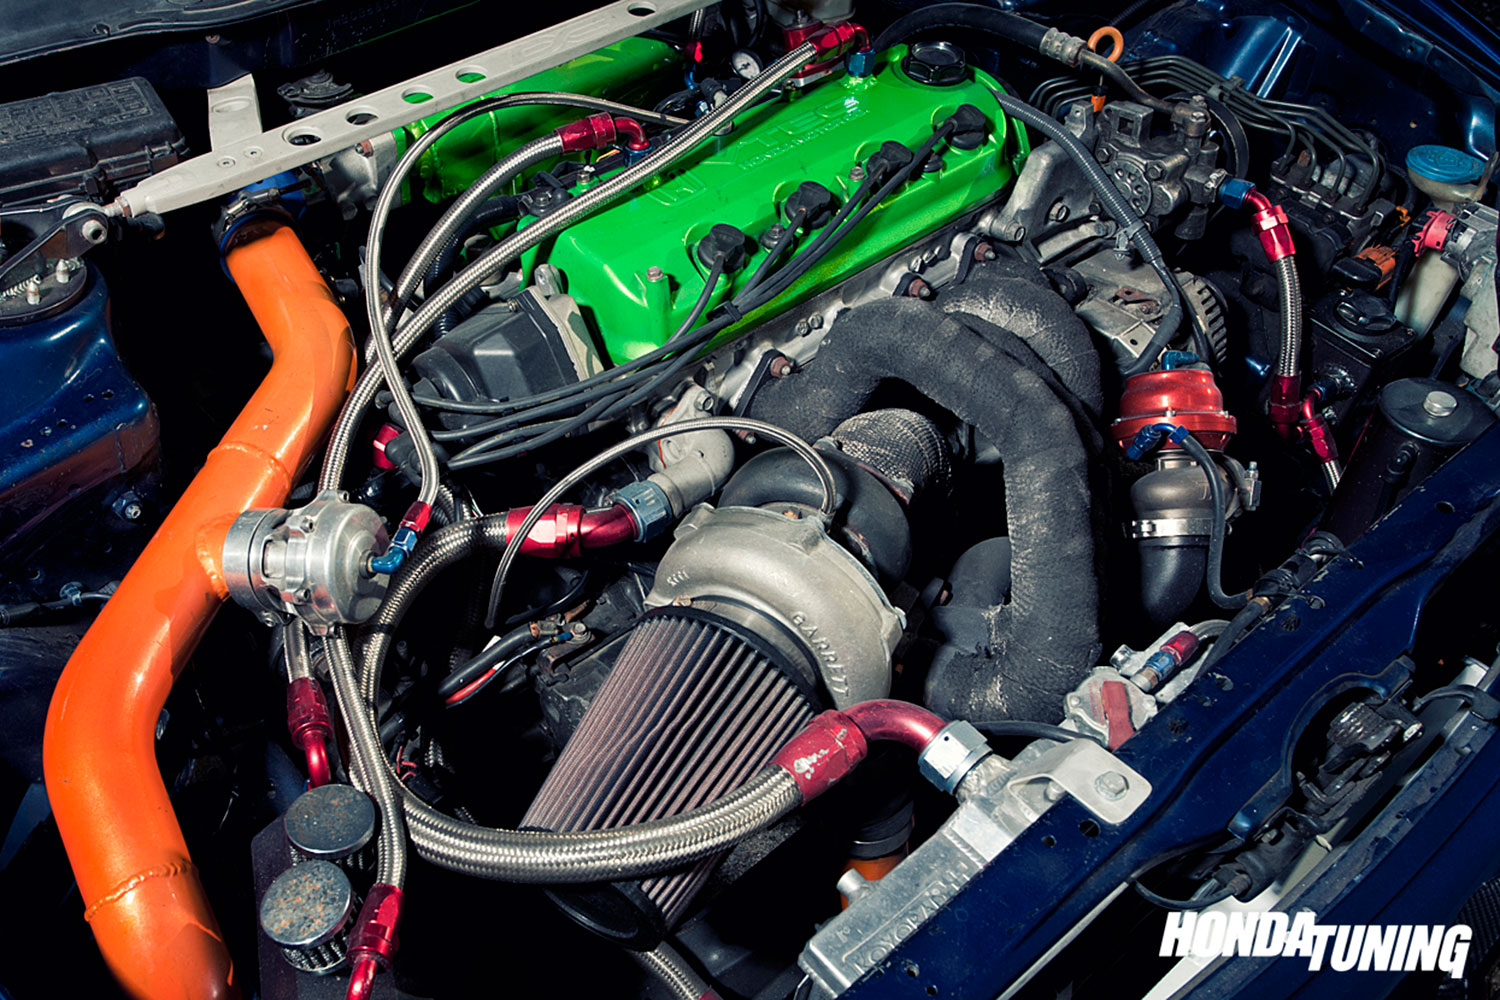 SOHC-Powered Builds - Honda Tuning Magazine